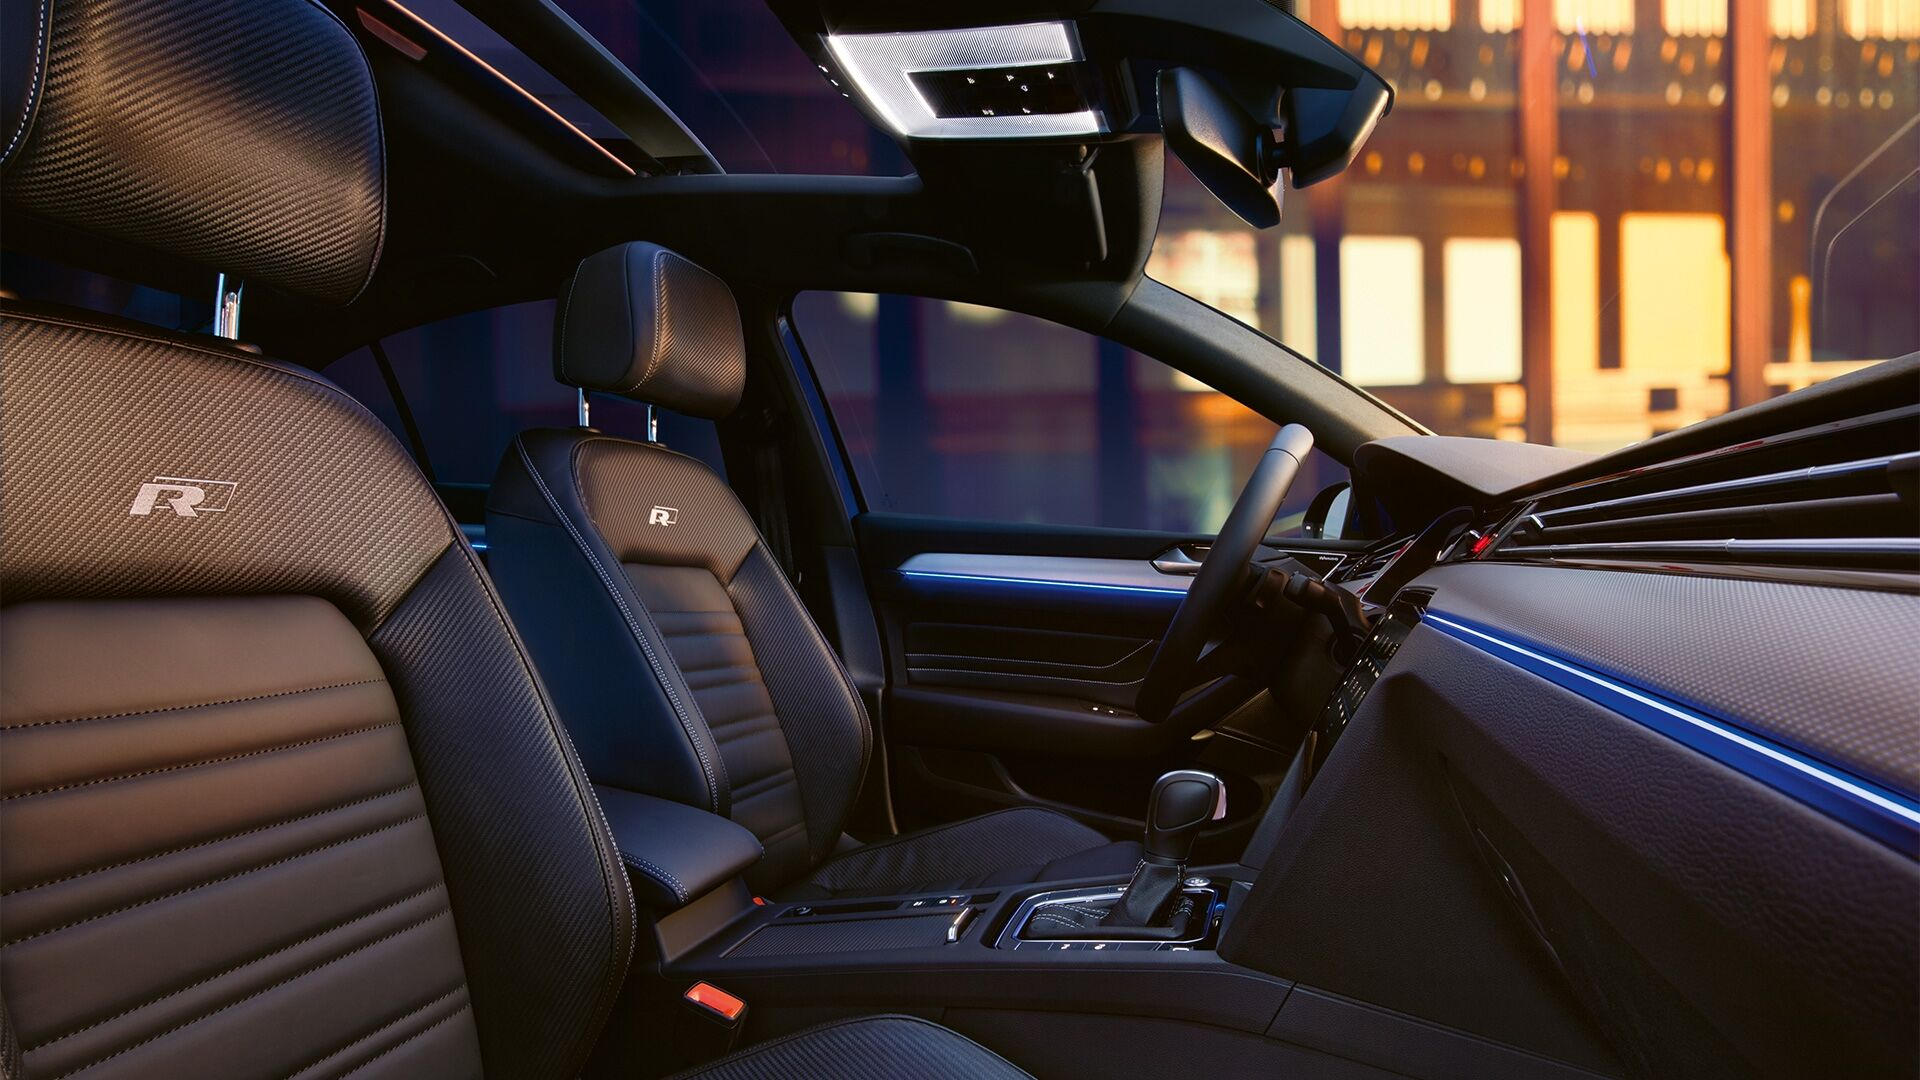 passat r Line interior with front seats and ambient lights